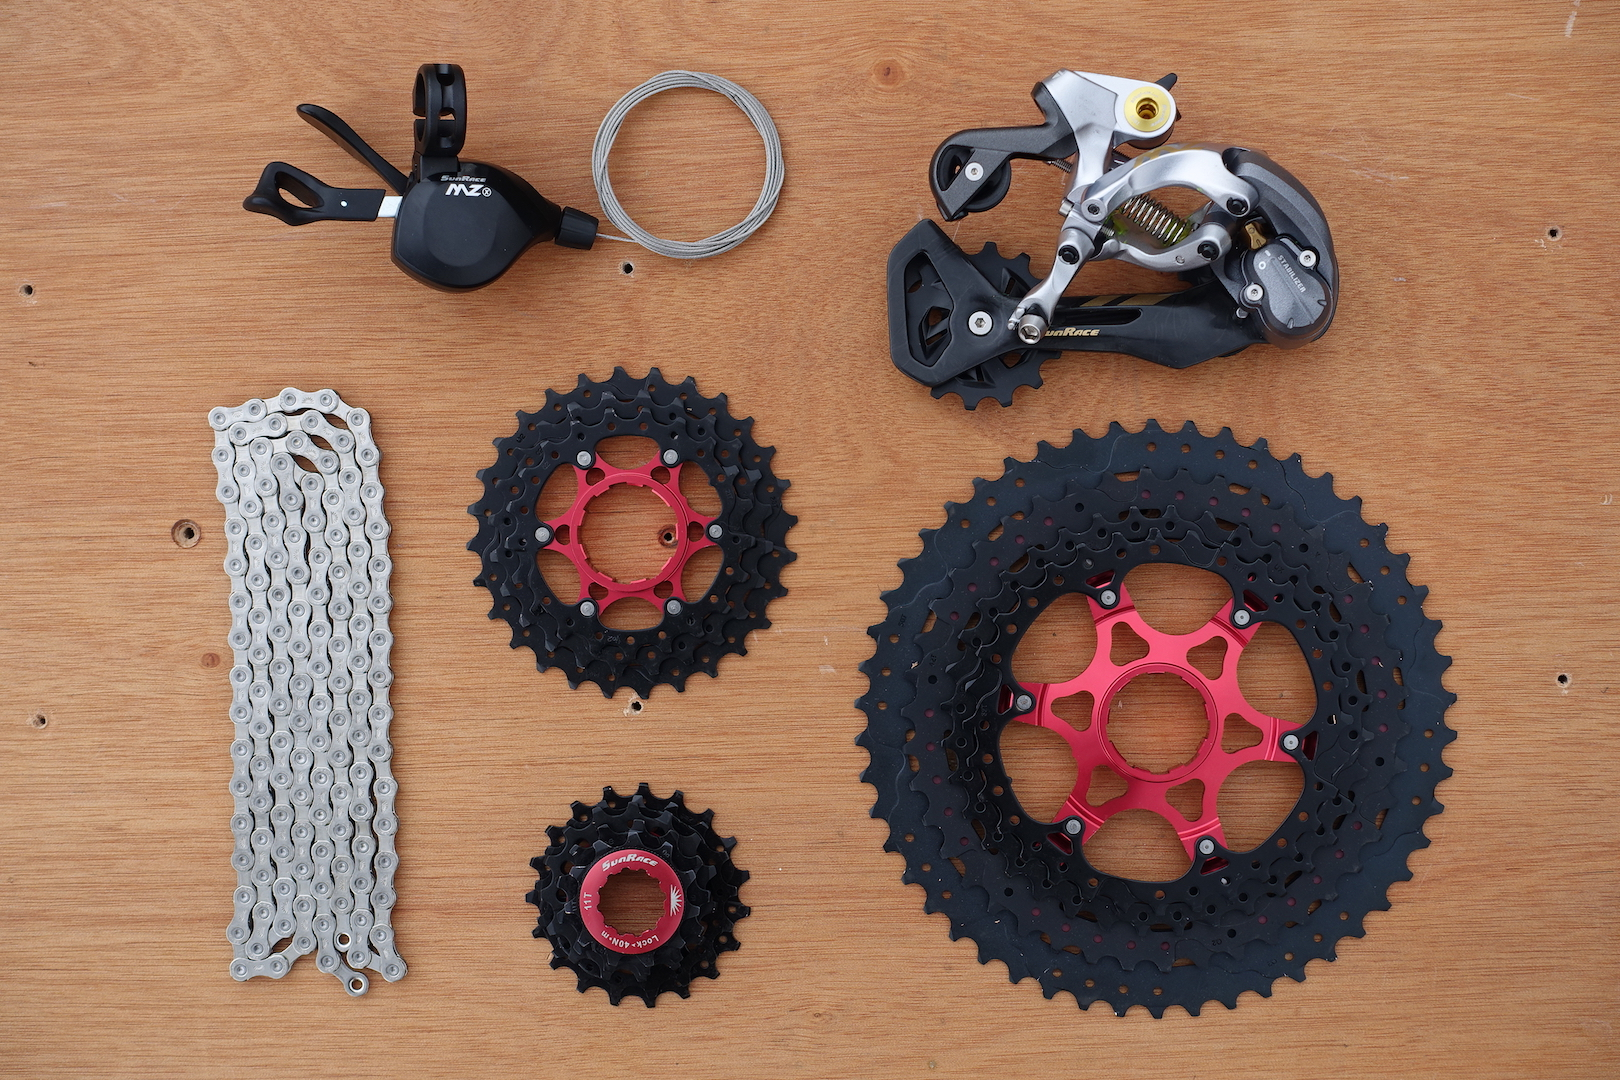 Exclusive New 112 Drivetrain From Sunrace Singletrack Magazine Mini Group Set 11speed Slx Sprocket 46t Its A And It Aint Shimano Or Sram